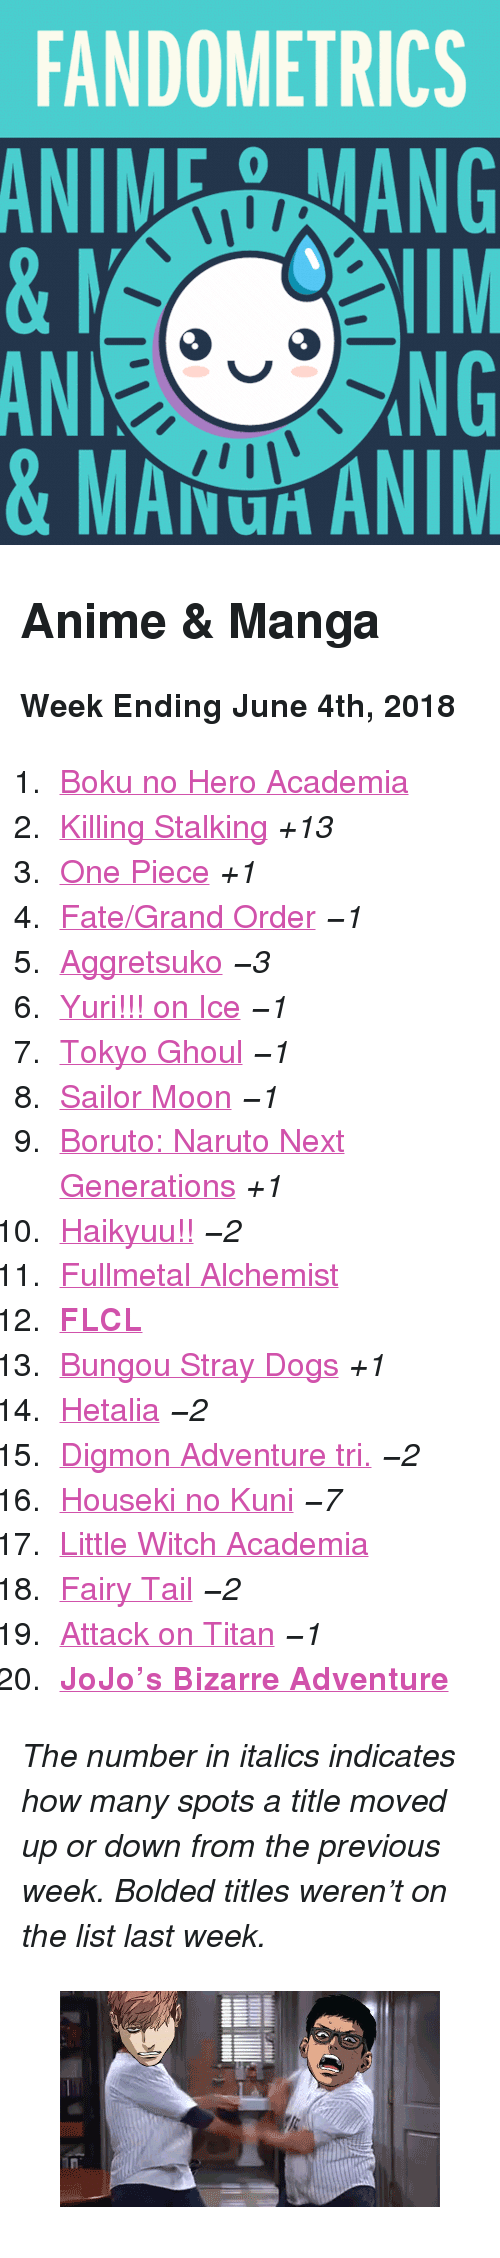 """Anime, Dogs, and Naruto: FANDOMETRICS  ANIMEANG  0  NG  AN  & MANU ANIM <h2>Anime &amp; Manga</h2><p><b>Week Ending June 4th, 2018</b></p><ol><li><a href=""""http://www.tumblr.com/search/boku%20no%20hero%20academia"""">Boku no Hero Academia</a></li>  <li><a href=""""http://www.tumblr.com/search/killing%20stalking"""">Killing Stalking</a><i>+13</i></li>  <li><a href=""""http://www.tumblr.com/search/one%20piece"""">One Piece</a><i>+1</i></li>  <li><a href=""""http://www.tumblr.com/search/fate%20grand%20order"""">Fate/Grand Order</a><i>−1</i></li>  <li><a href=""""http://www.tumblr.com/search/aggretsuko"""">Aggretsuko</a><i>−3</i></li>  <li><a href=""""http://www.tumblr.com/search/yuri%20on%20ice"""">Yuri!!! on Ice</a><i>−1</i></li>  <li><a href=""""http://www.tumblr.com/search/tokyo%20ghoul"""">Tokyo Ghoul</a><i>−1</i></li>  <li><a href=""""http://www.tumblr.com/search/sailor%20moon"""">Sailor Moon</a><i>−1</i></li>  <li><a href=""""http://www.tumblr.com/search/boruto"""">Boruto: Naruto Next Generations</a><i>+1</i></li>  <li><a href=""""http://www.tumblr.com/search/haikyuu!!"""">Haikyuu!!</a><i>−2</i></li>  <li><a href=""""http://www.tumblr.com/search/fullmetal%20alchemist"""">Fullmetal Alchemist</a></li>  <li><a href=""""http://www.tumblr.com/search/flcl""""><b>FLCL</b></a></li>  <li><a href=""""http://www.tumblr.com/search/bungou%20stray%20dogs"""">Bungou Stray Dogs</a><i>+1</i></li>  <li><a href=""""http://www.tumblr.com/search/hetalia"""">Hetalia</a><i>−2</i></li>  <li><a href=""""http://www.tumblr.com/search/digimon"""">Digmon Adventure tri.</a><i>−2</i></li>  <li><a href=""""http://www.tumblr.com/search/houseki%20no%20kuni"""">Houseki no Kuni</a><i>−7</i></li>  <li><a href=""""http://www.tumblr.com/search/little%20witch%20academia"""">Little Witch Academia</a></li>  <li><a href=""""http://www.tumblr.com/search/fairy%20tail"""">Fairy Tail</a><i>−2</i></li>  <li><a href=""""http://www.tumblr.com/search/snk"""">Attack on Titan</a><i>−1</i></li>  <li><a href=""""http://www.tumblr.com/search/jojo's%20bizarre%20adventure""""><b>JoJo&rsquo;s Bizarre Adventure</b></a></li></ol><p><i>The"""